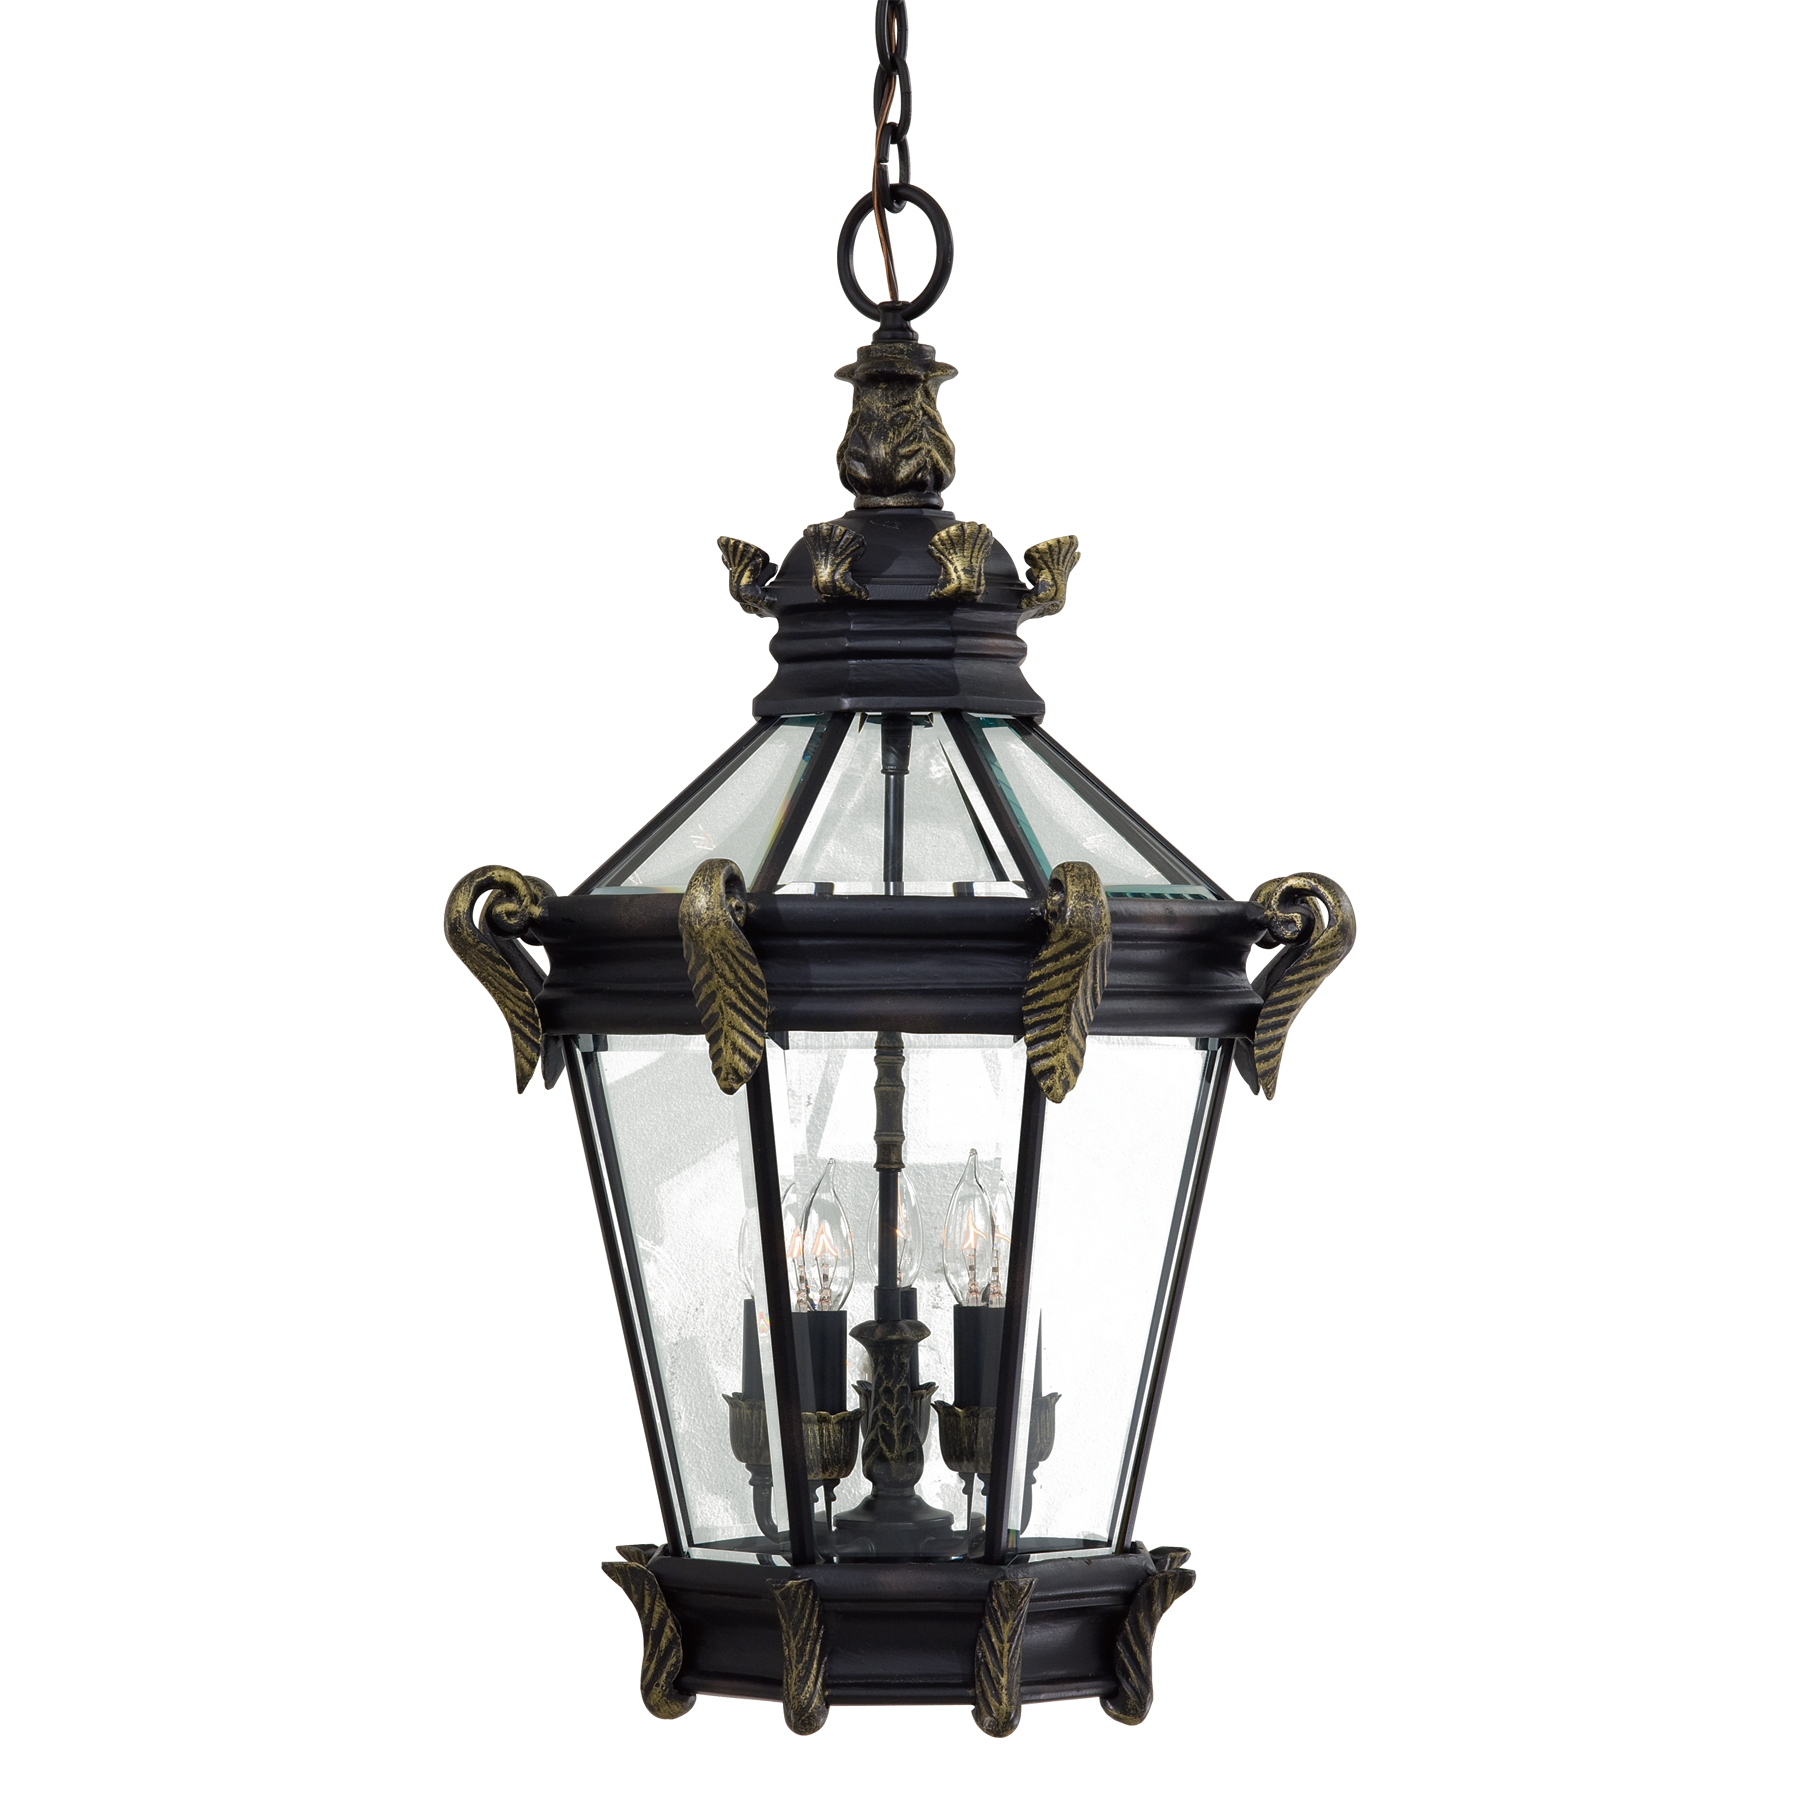 Minka group brands the great outdoorsreg 8934 95 stratford hall 5 light outdoor chain hung aloadofball